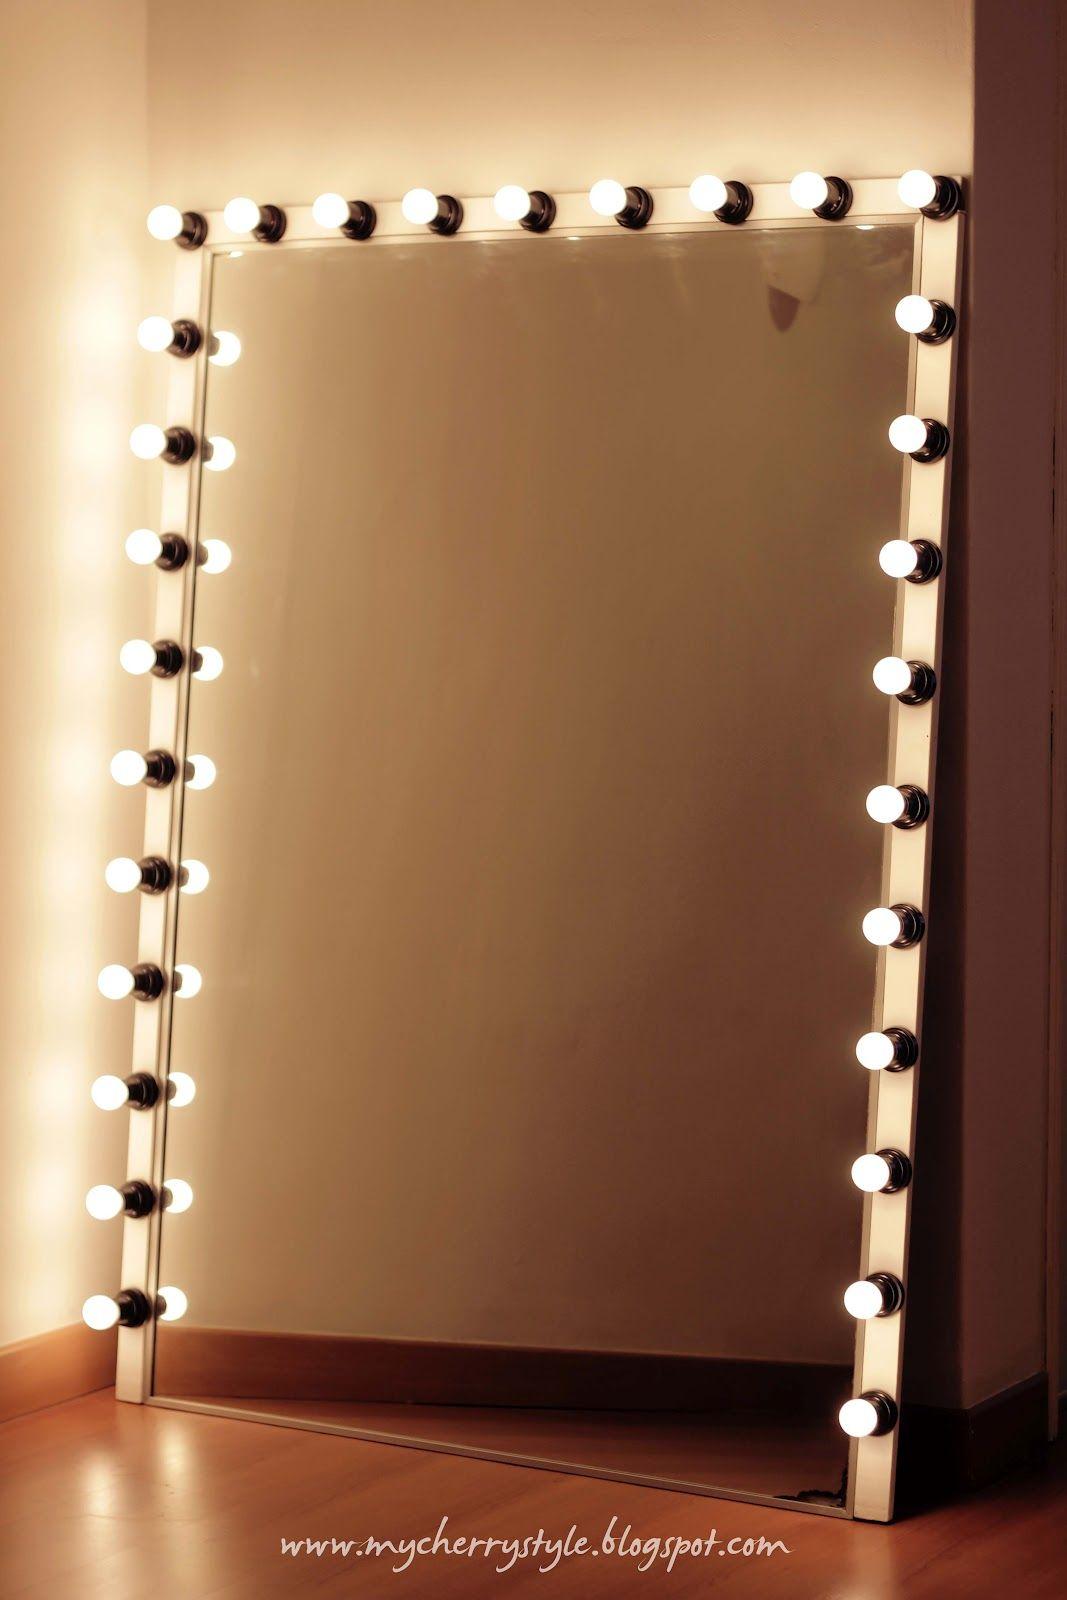 DIY Hollywood Style Mirror With Lights! Tutorial From Scratch. Perfect To  Sit Vanity Table In Front Of. Tons Of Ideas I Could Use This For.